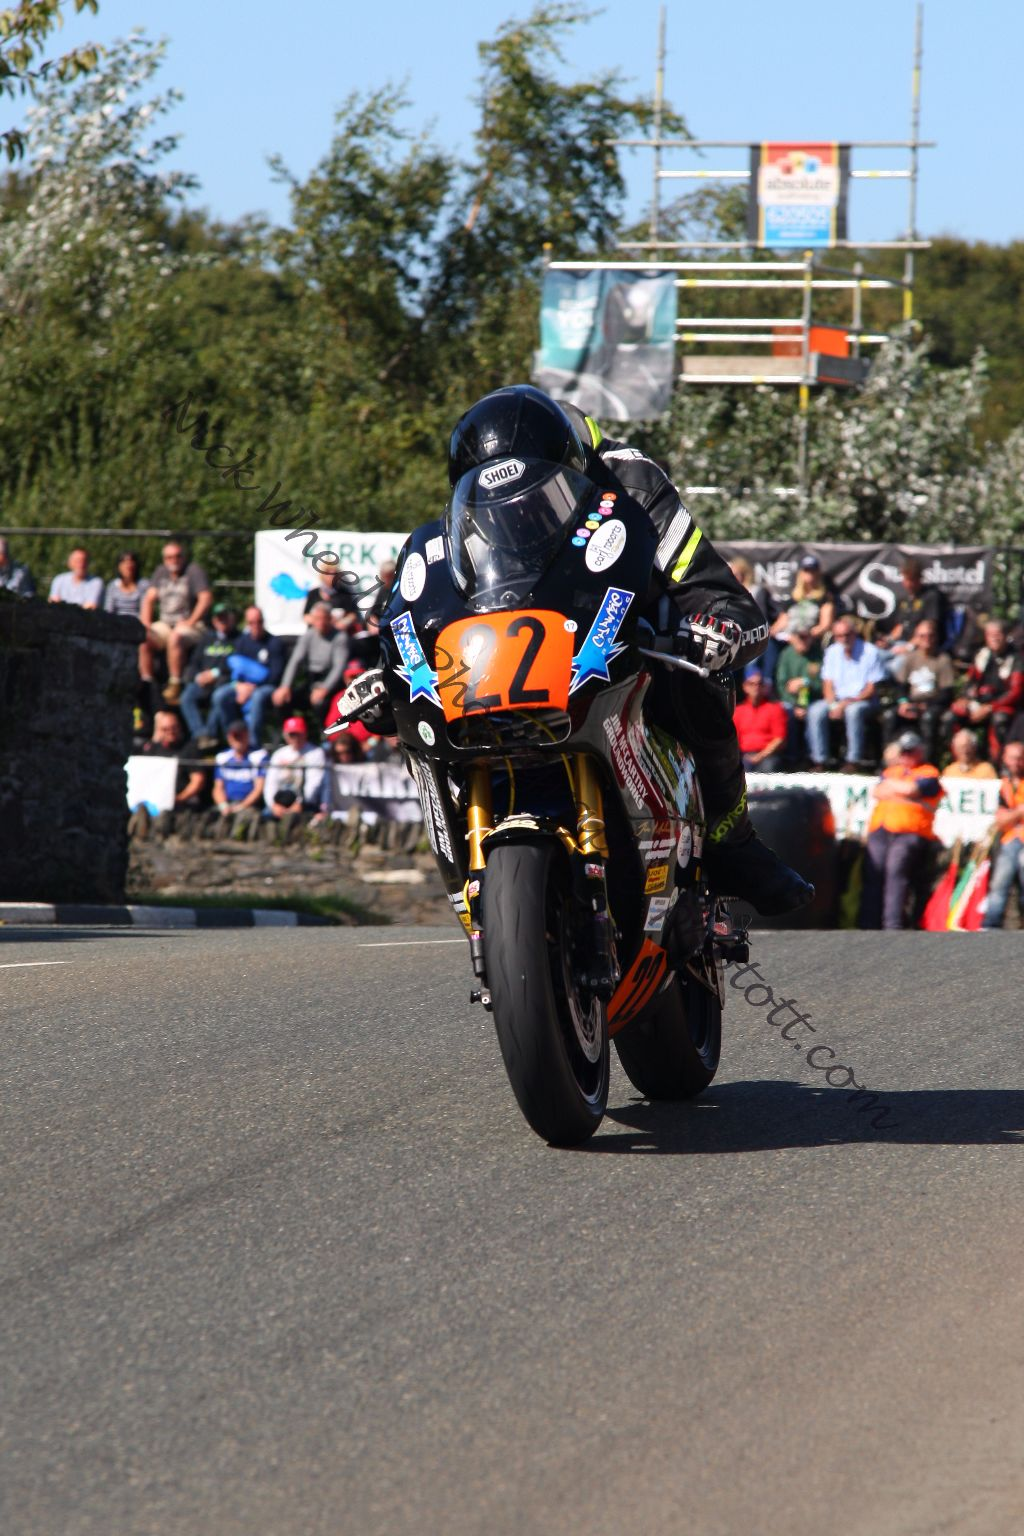 Marquee Twins Mount For Rising Star Chawke At 2018 Manx Grand Prix